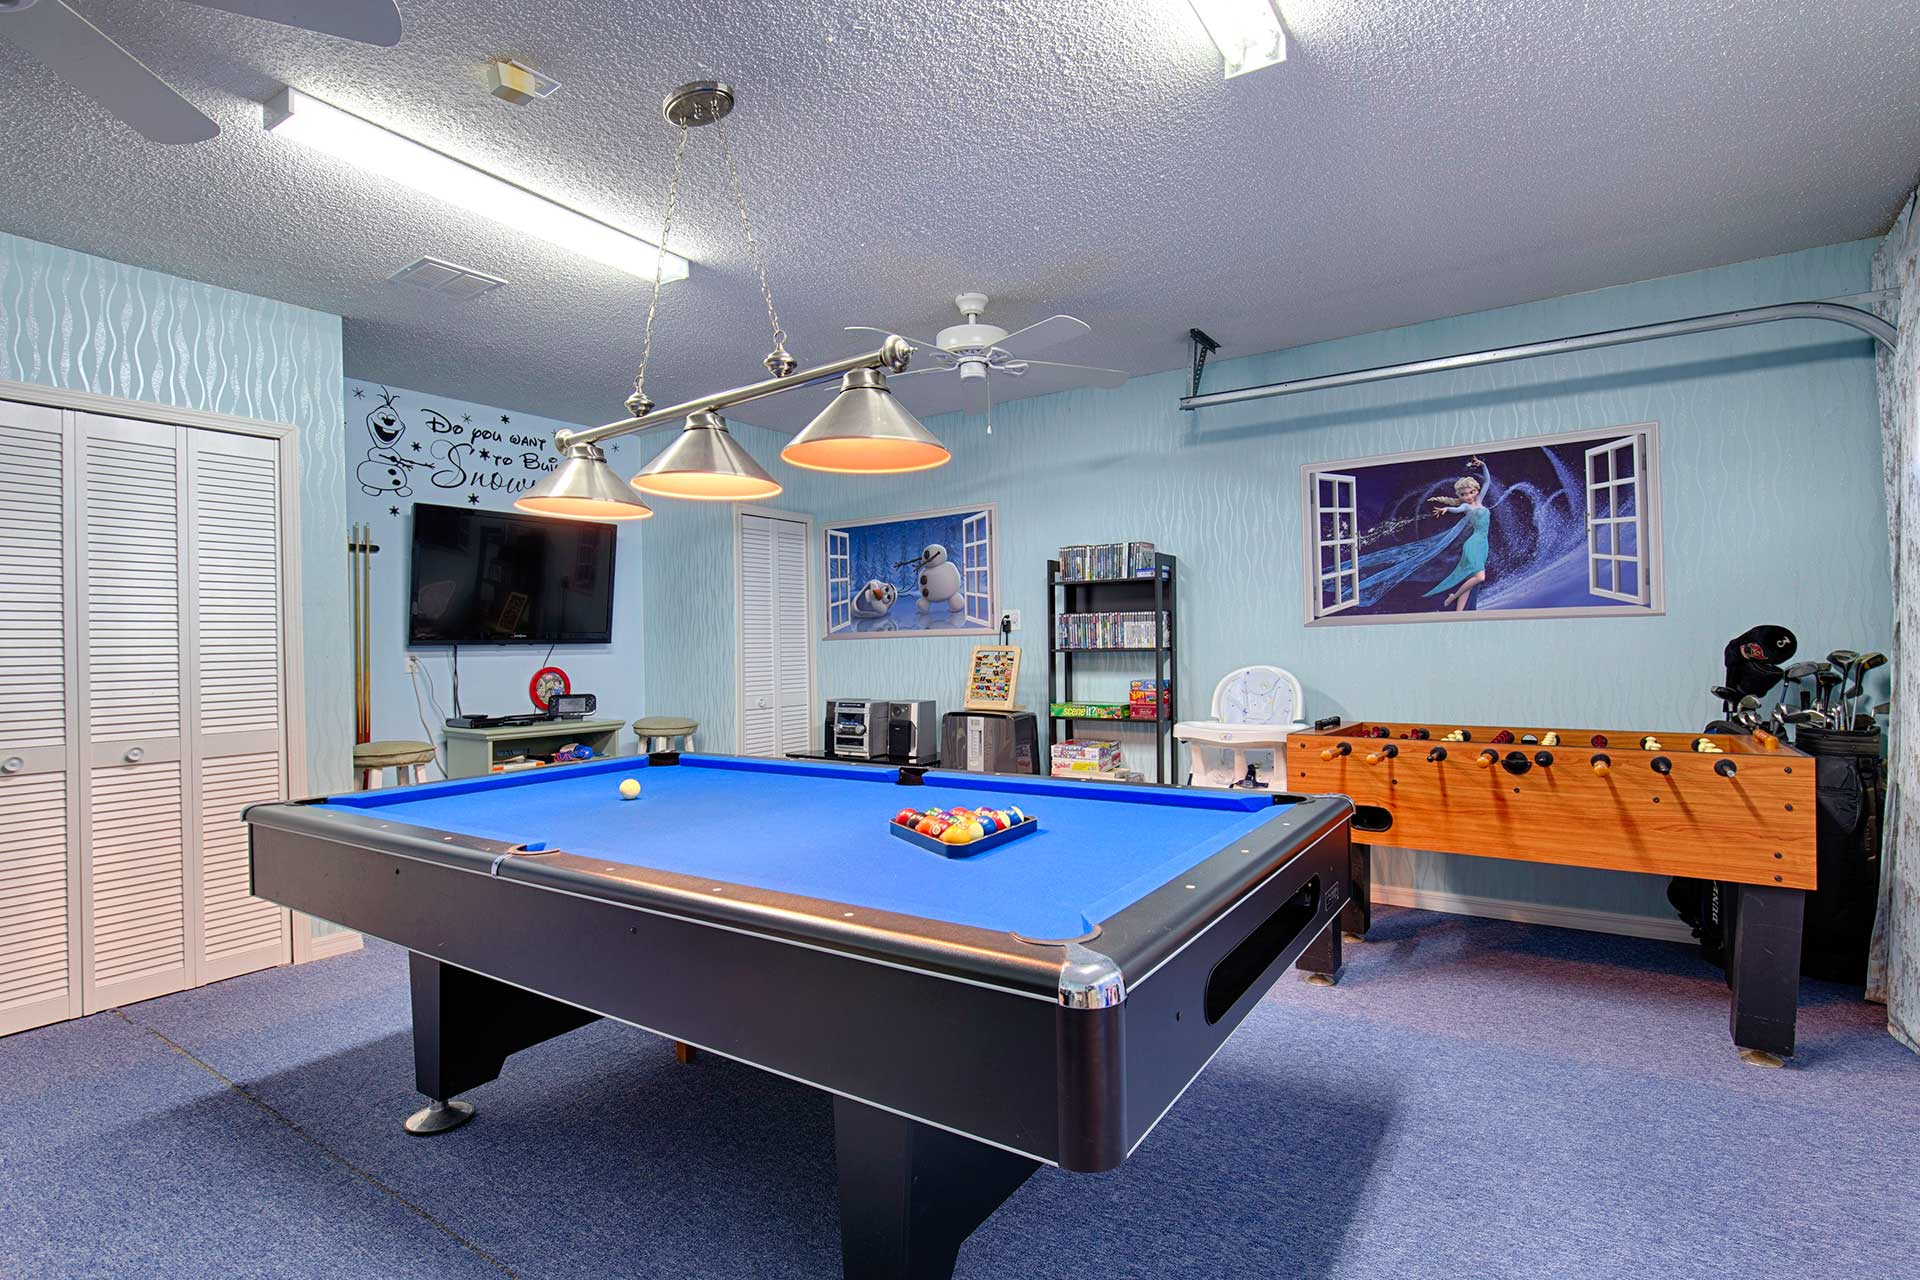 Slate Pool Table Orlando Vacation Home